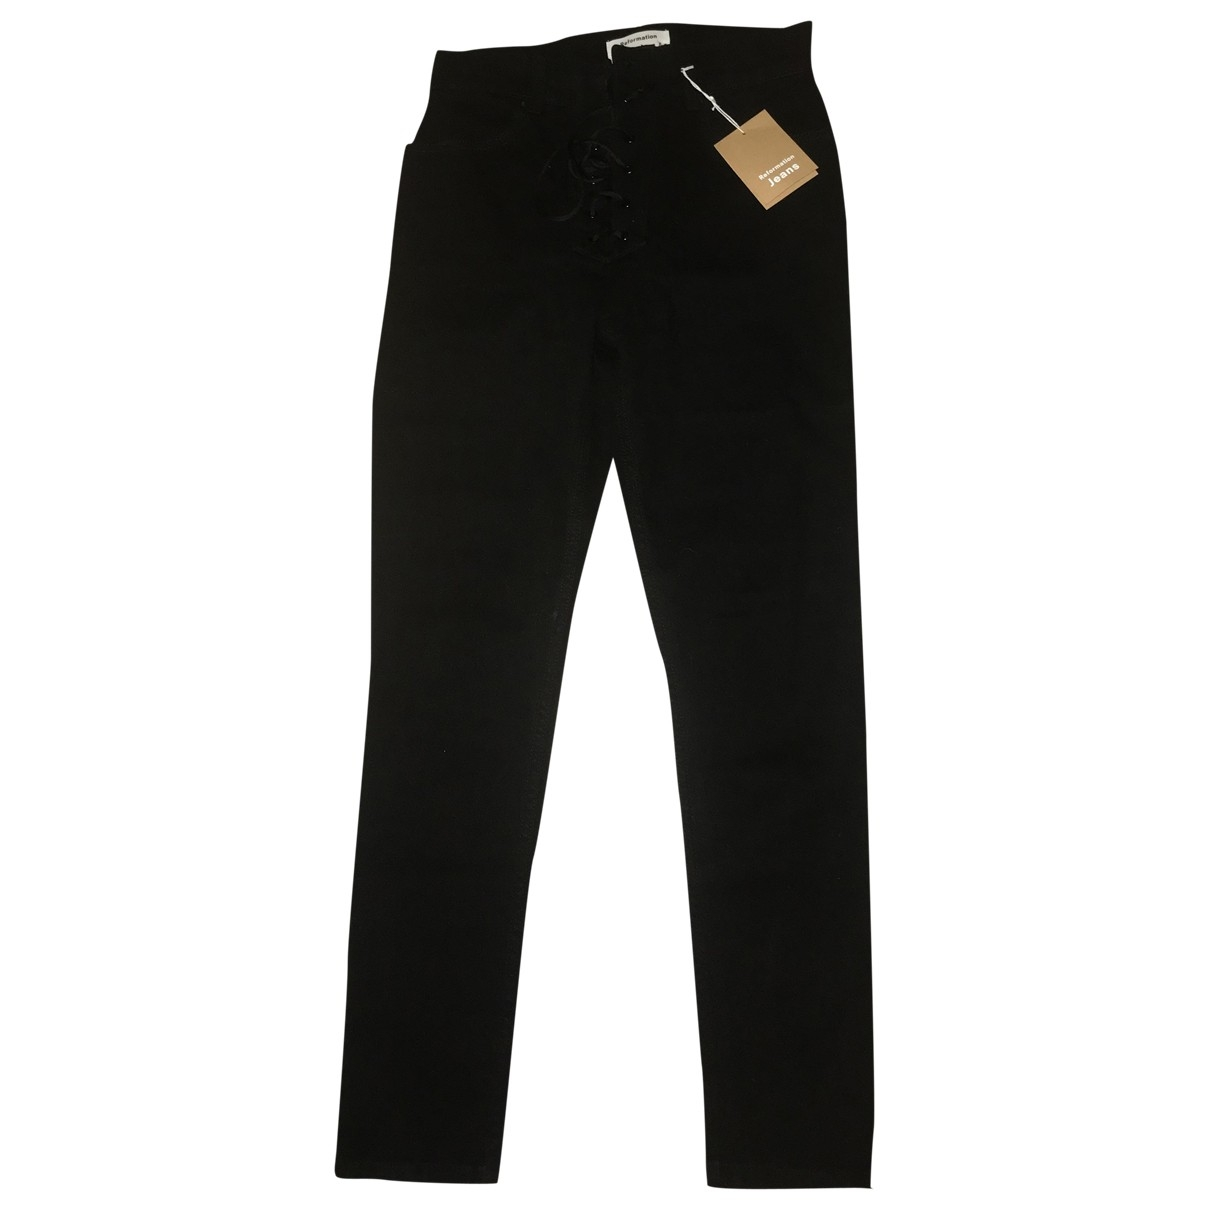 Reformation \N Black Denim - Jeans Jeans for Women 27 US